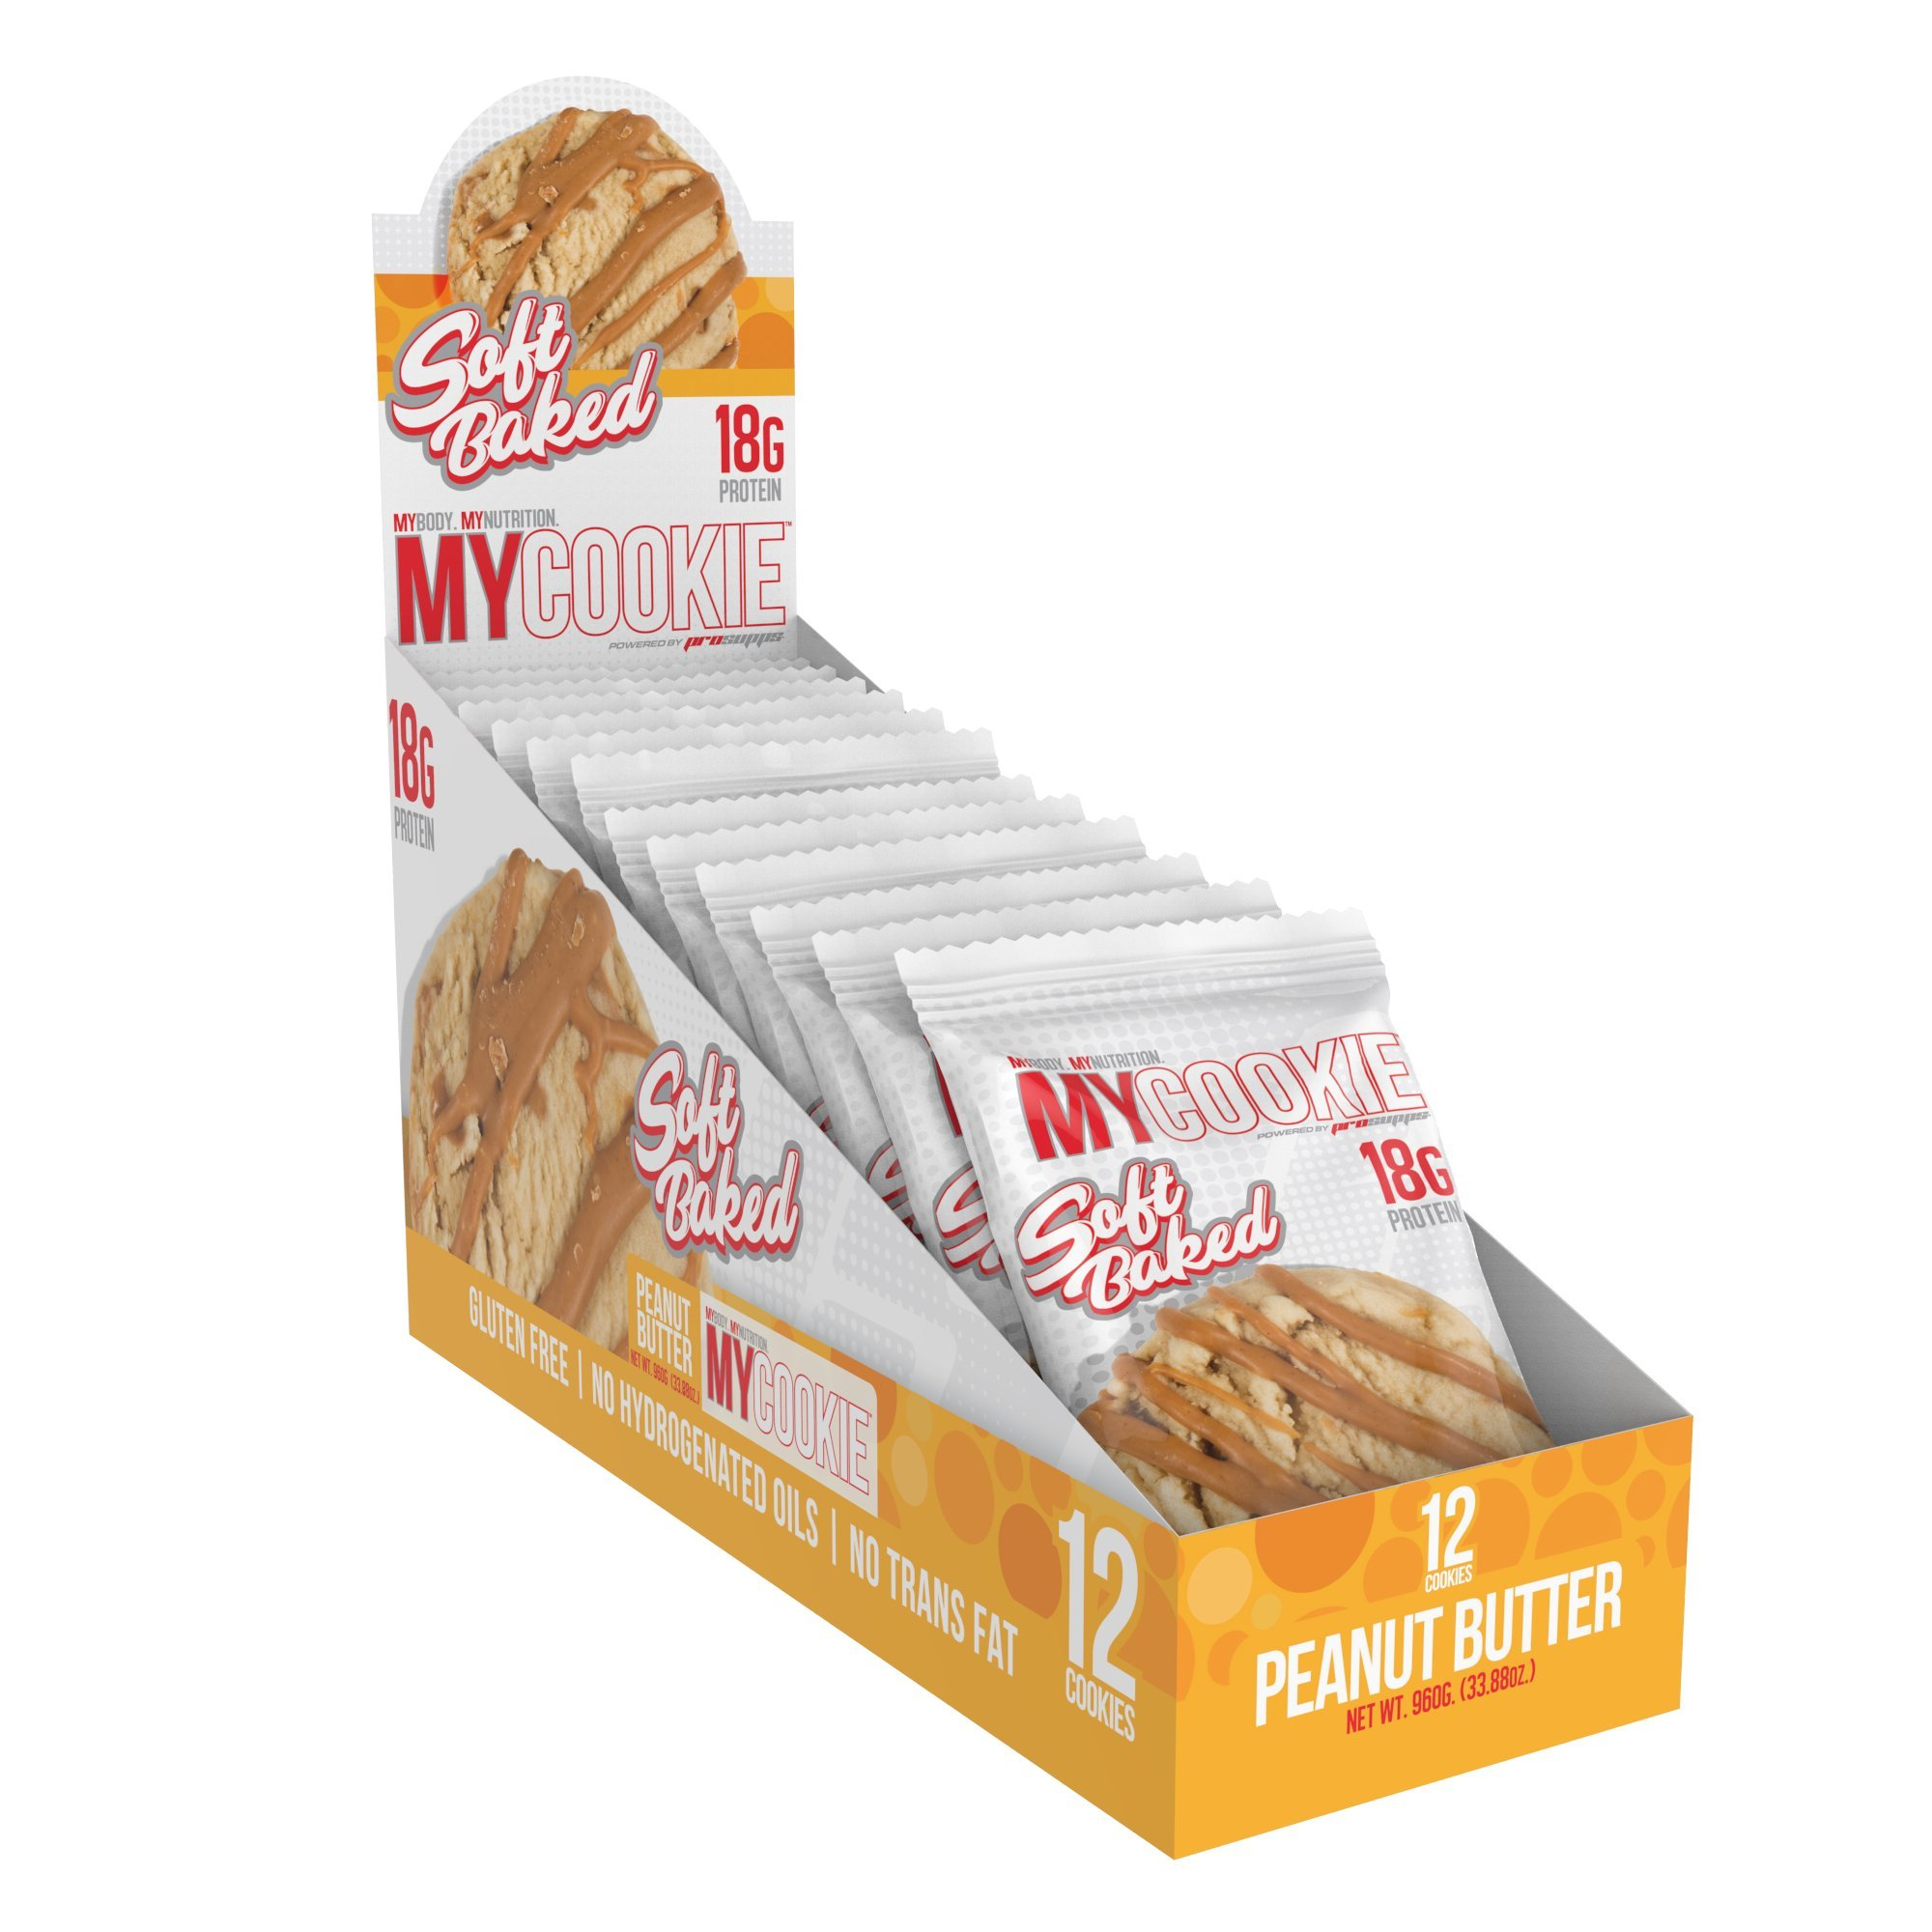 Pro Supps MYCOOKIE Delicious Soft Baked Protein Cookie, Peanut Butter, 18g Protein, 7g Sugar, Gluten-Free, No Trans Fat, Healthy On-The-Go Snack, 12 ct